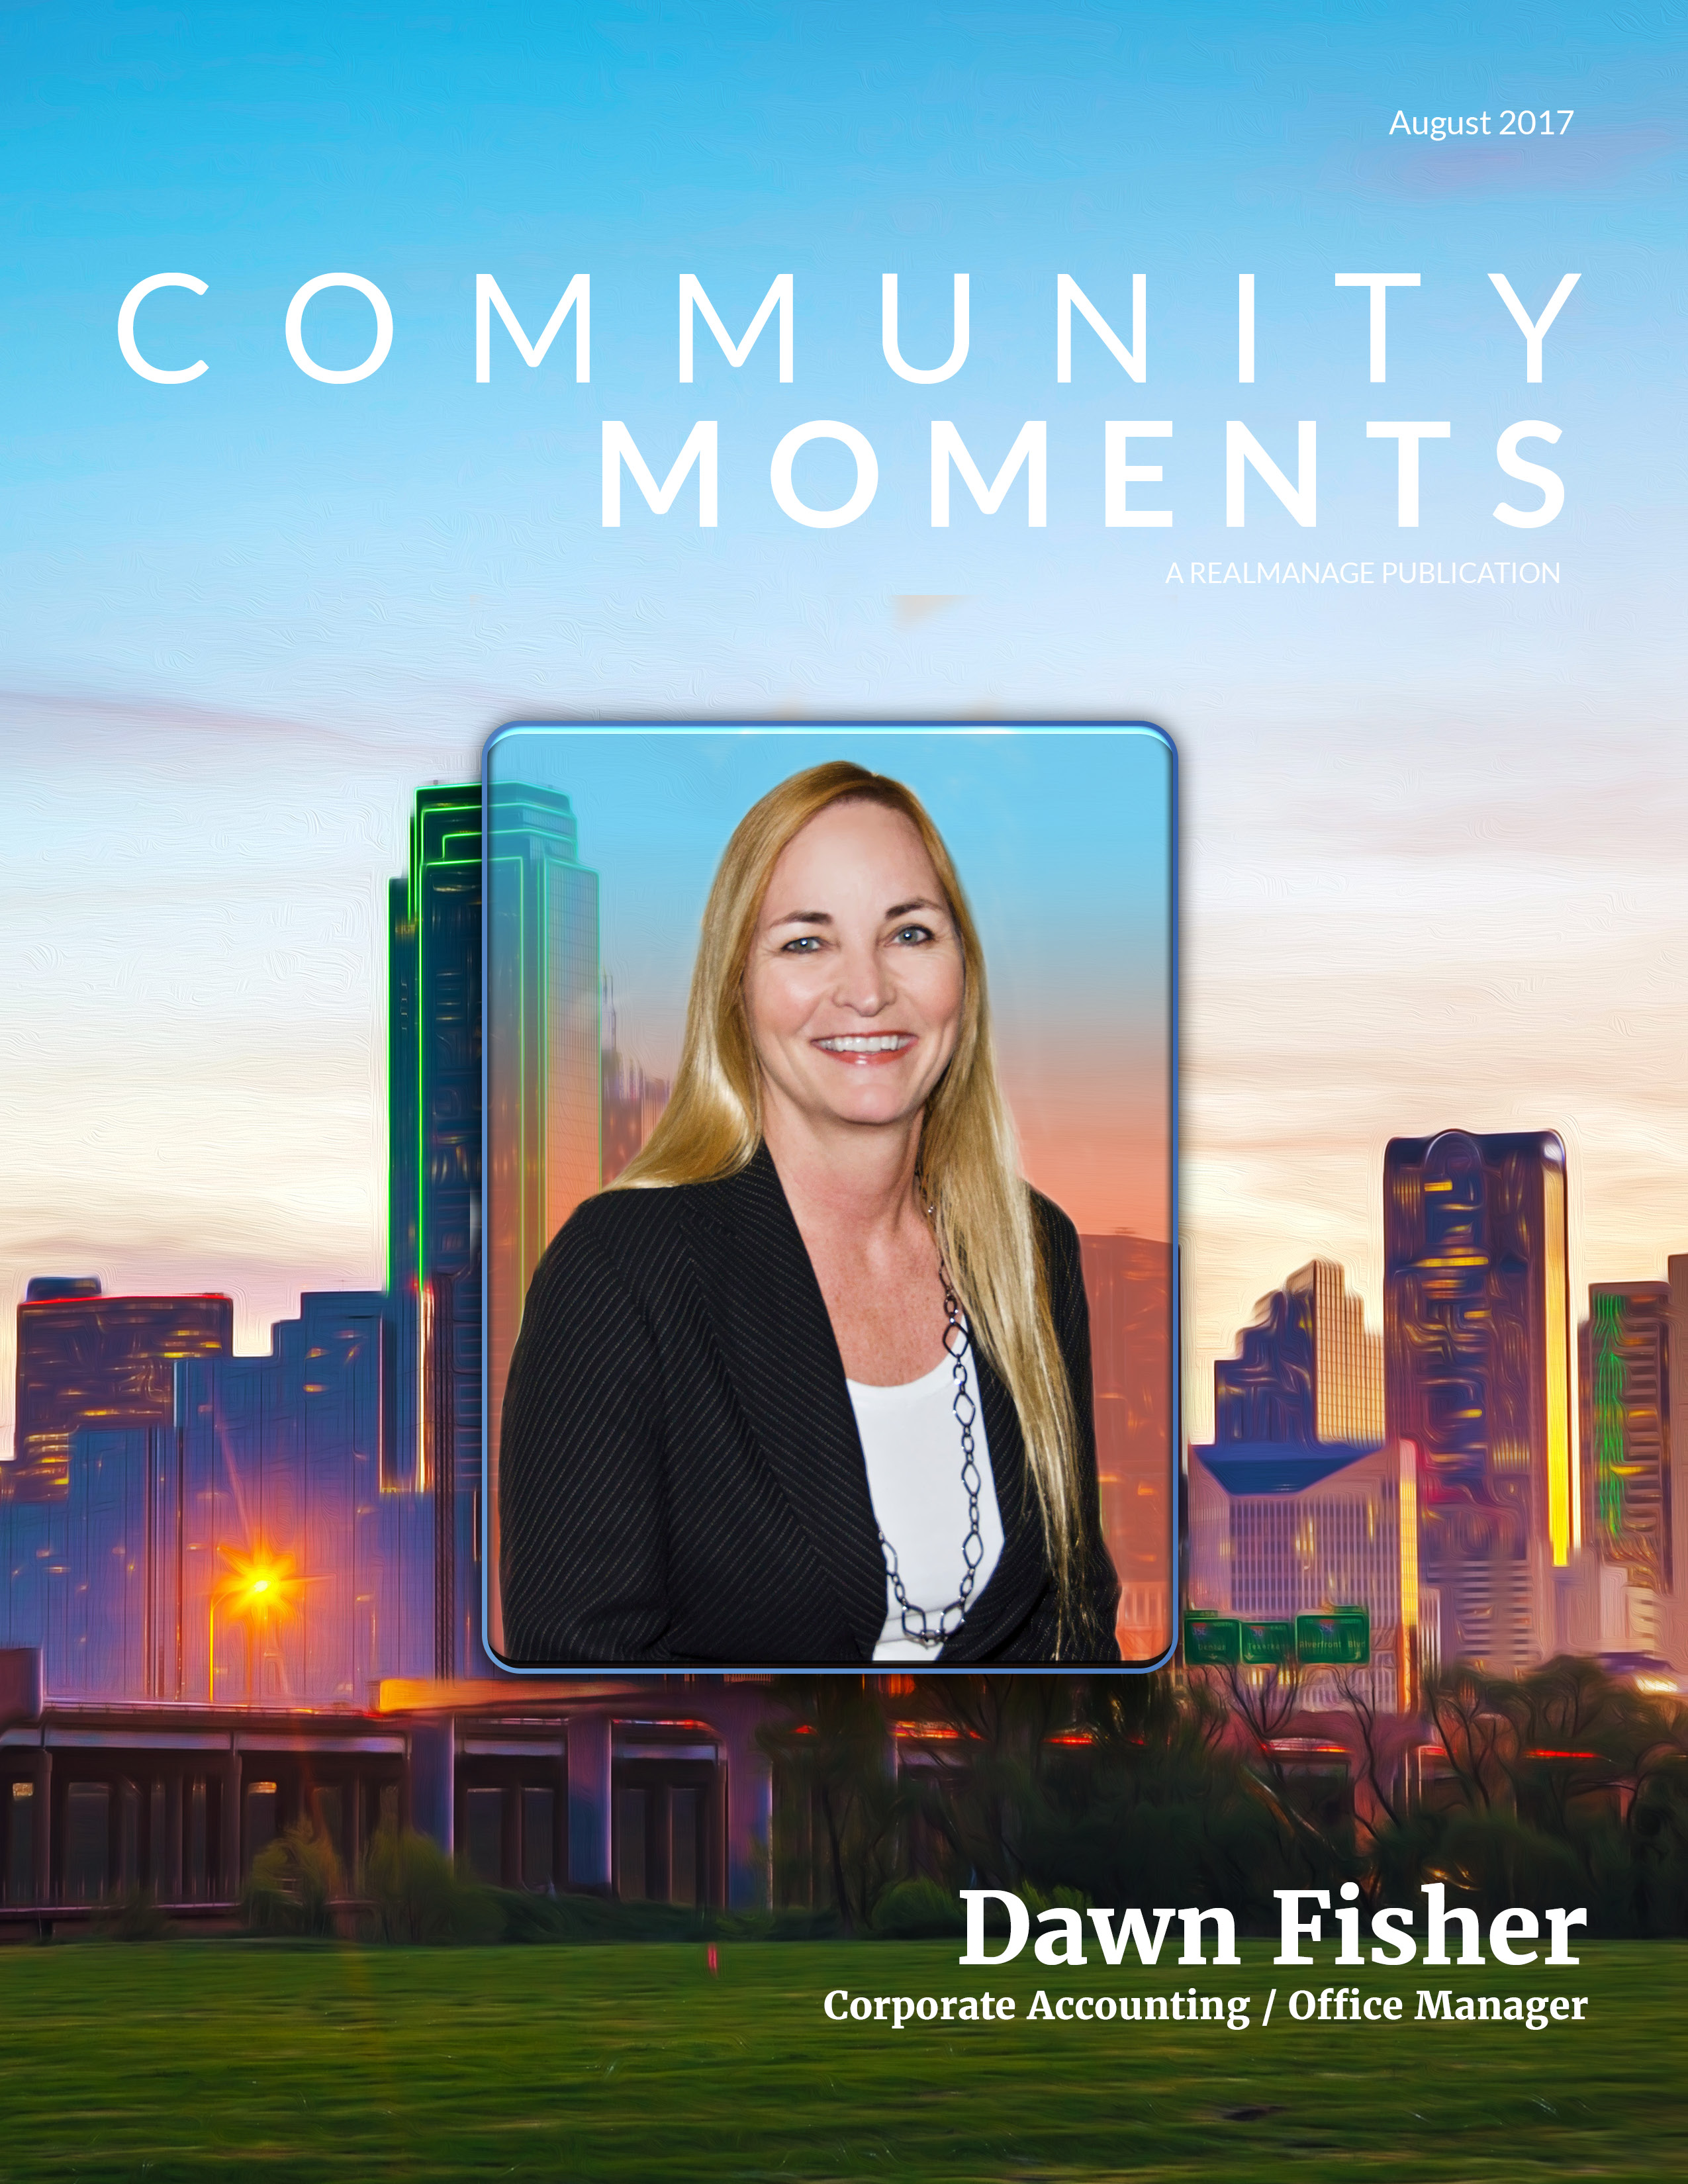 August 2017 Community Moments Cover Page